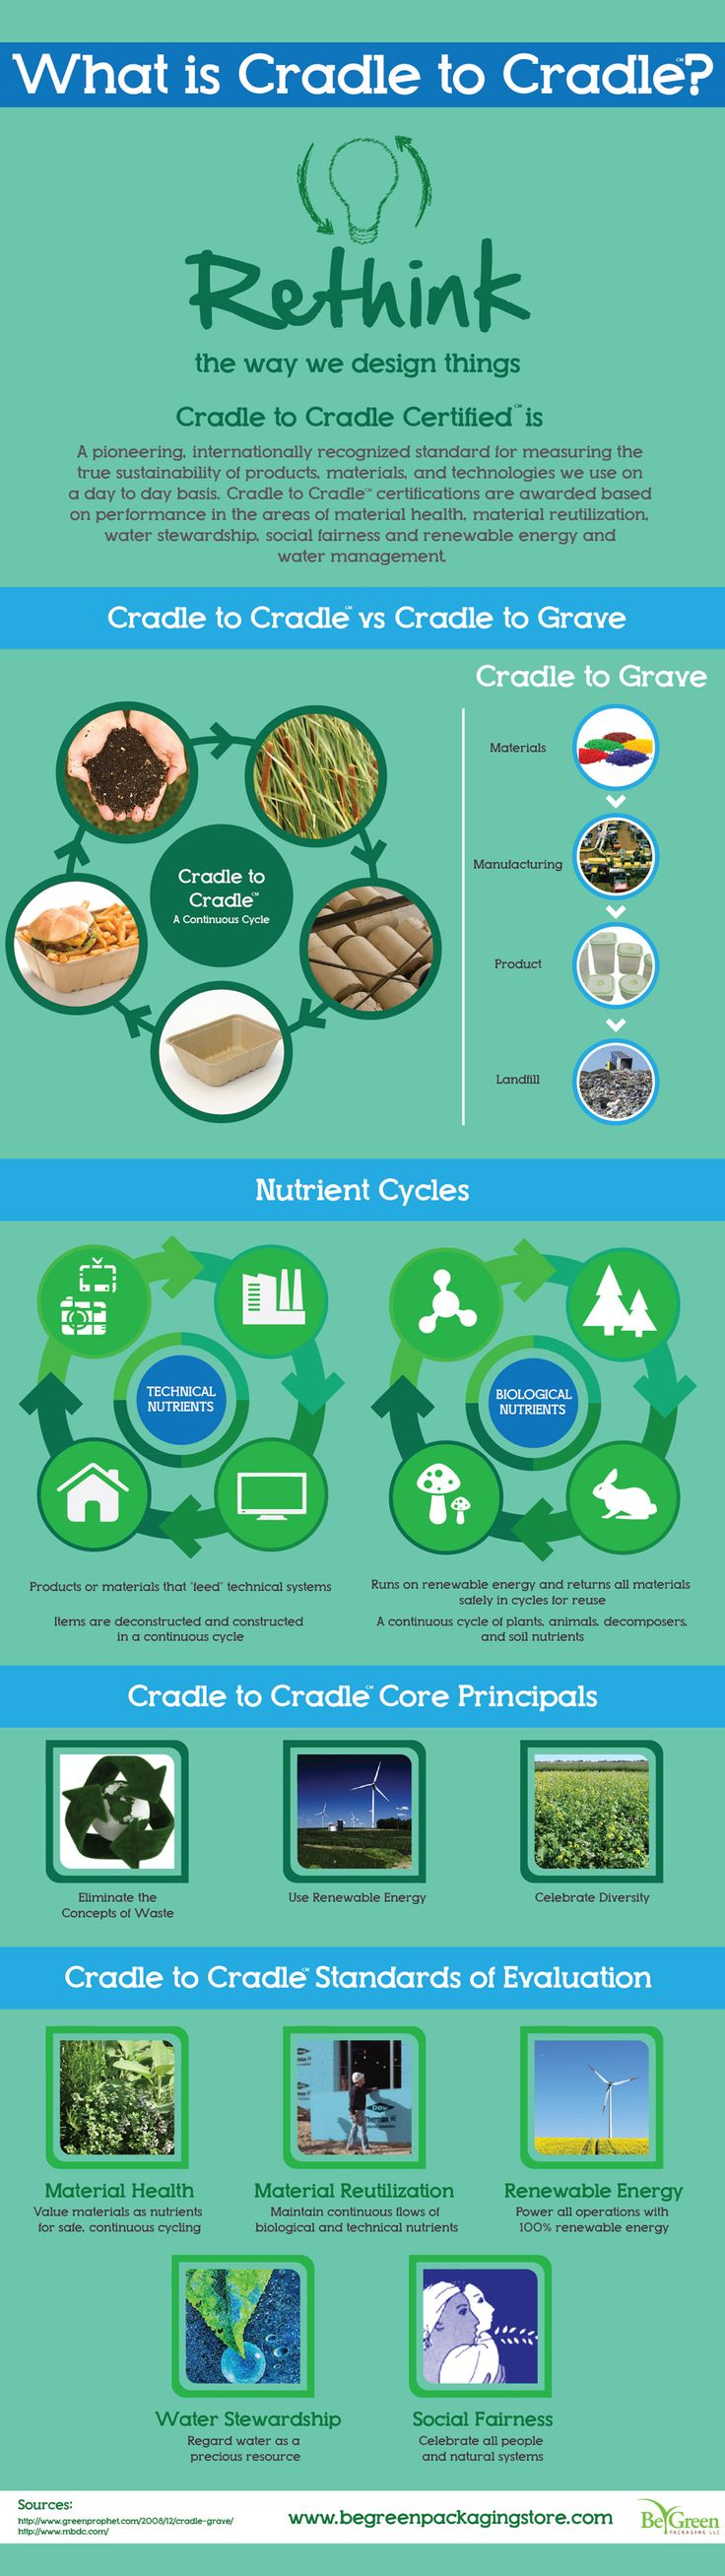 Be Green Packaging is proud to be a Cradle to Cradle certified! #infographic http://begreenpackaging.wordpress.com/2013/02/26/cradle-to-cradle-explained-a-simple-visual-guide-to-understanding-how-it-works-and-why-it-matters/